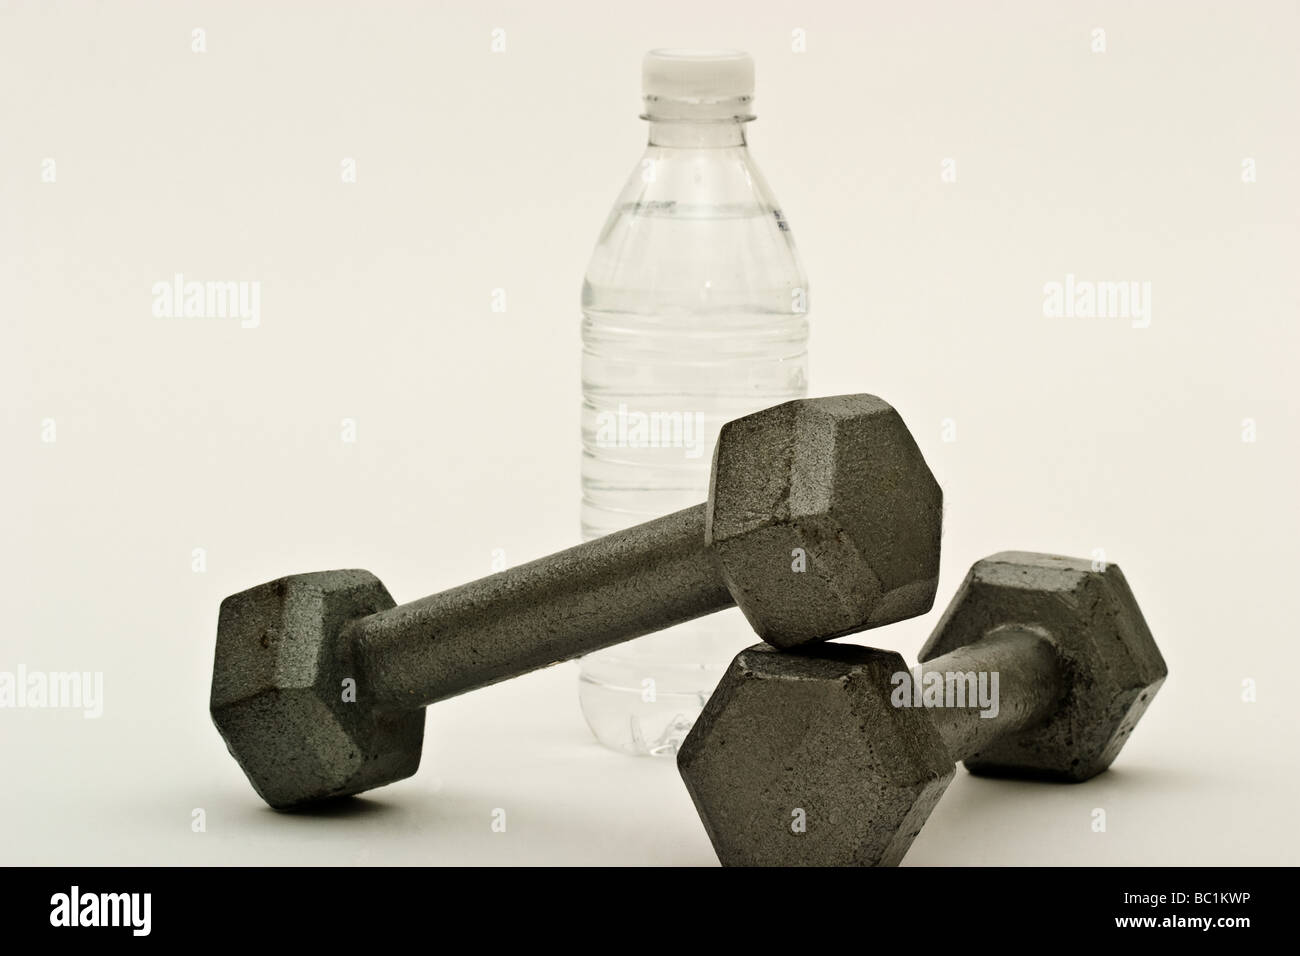 Two dumbbells in front of a bottle of water - Stock Image